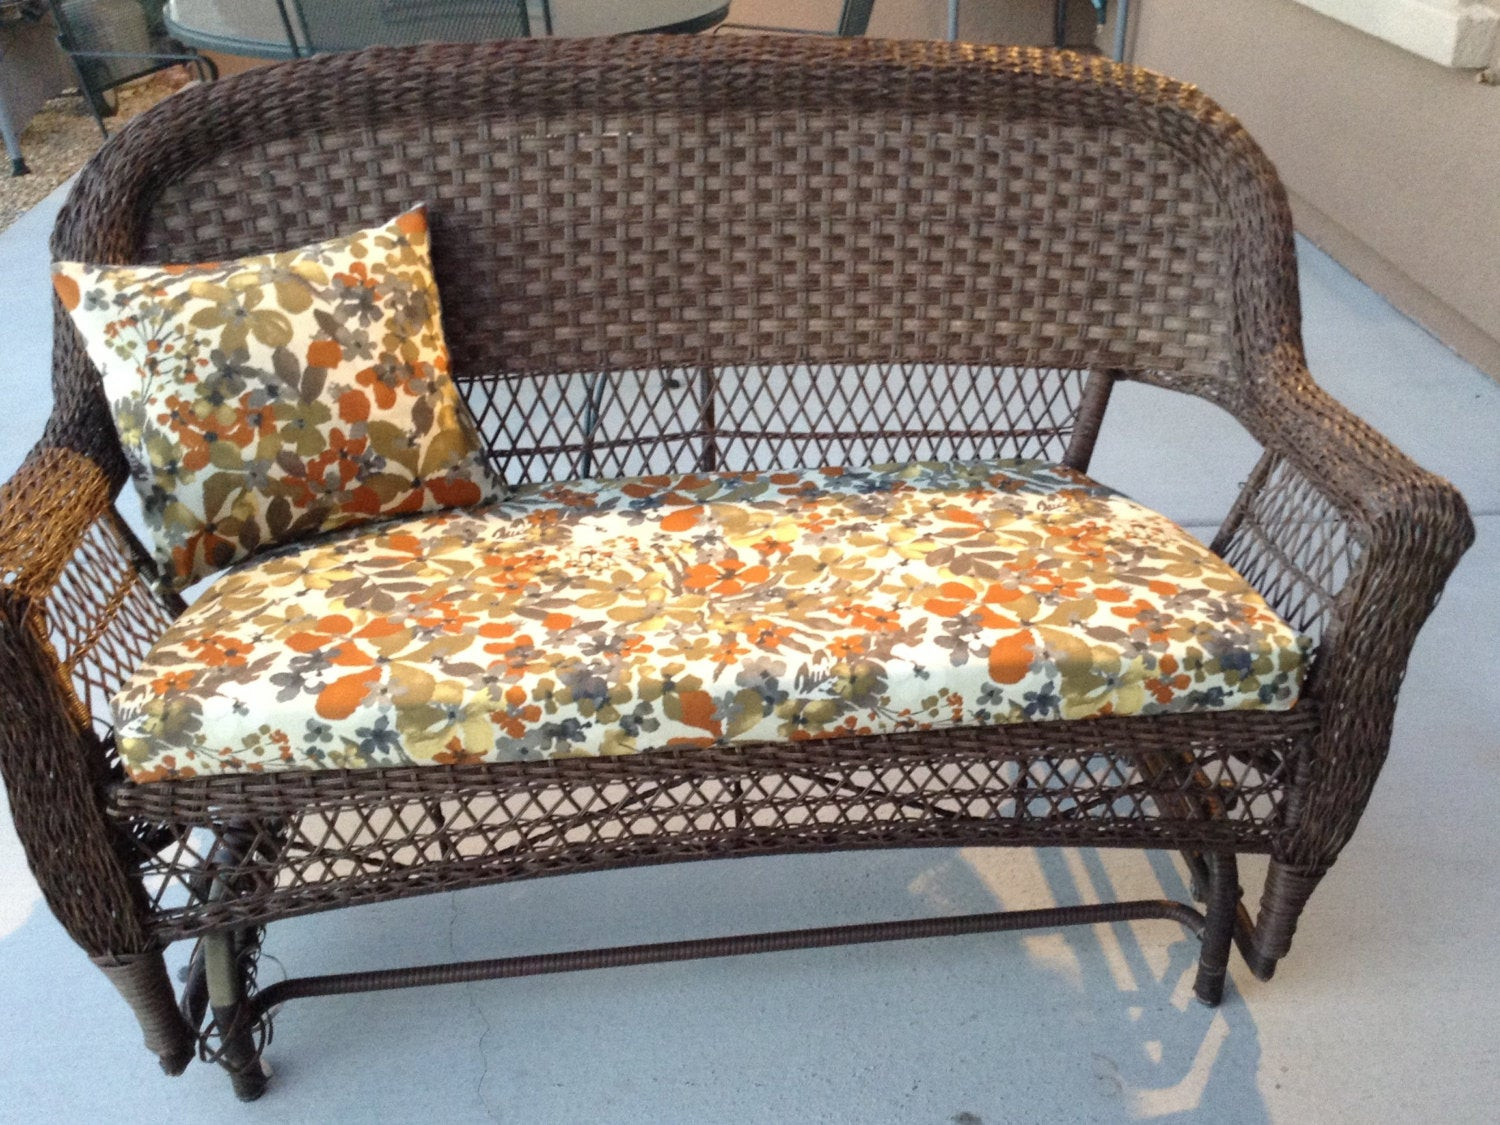 Best ideas about Patio Furniture Cushion Covers . Save or Pin Outdoor patio furniture cushion covers by BrittaLeighDesigns Now.